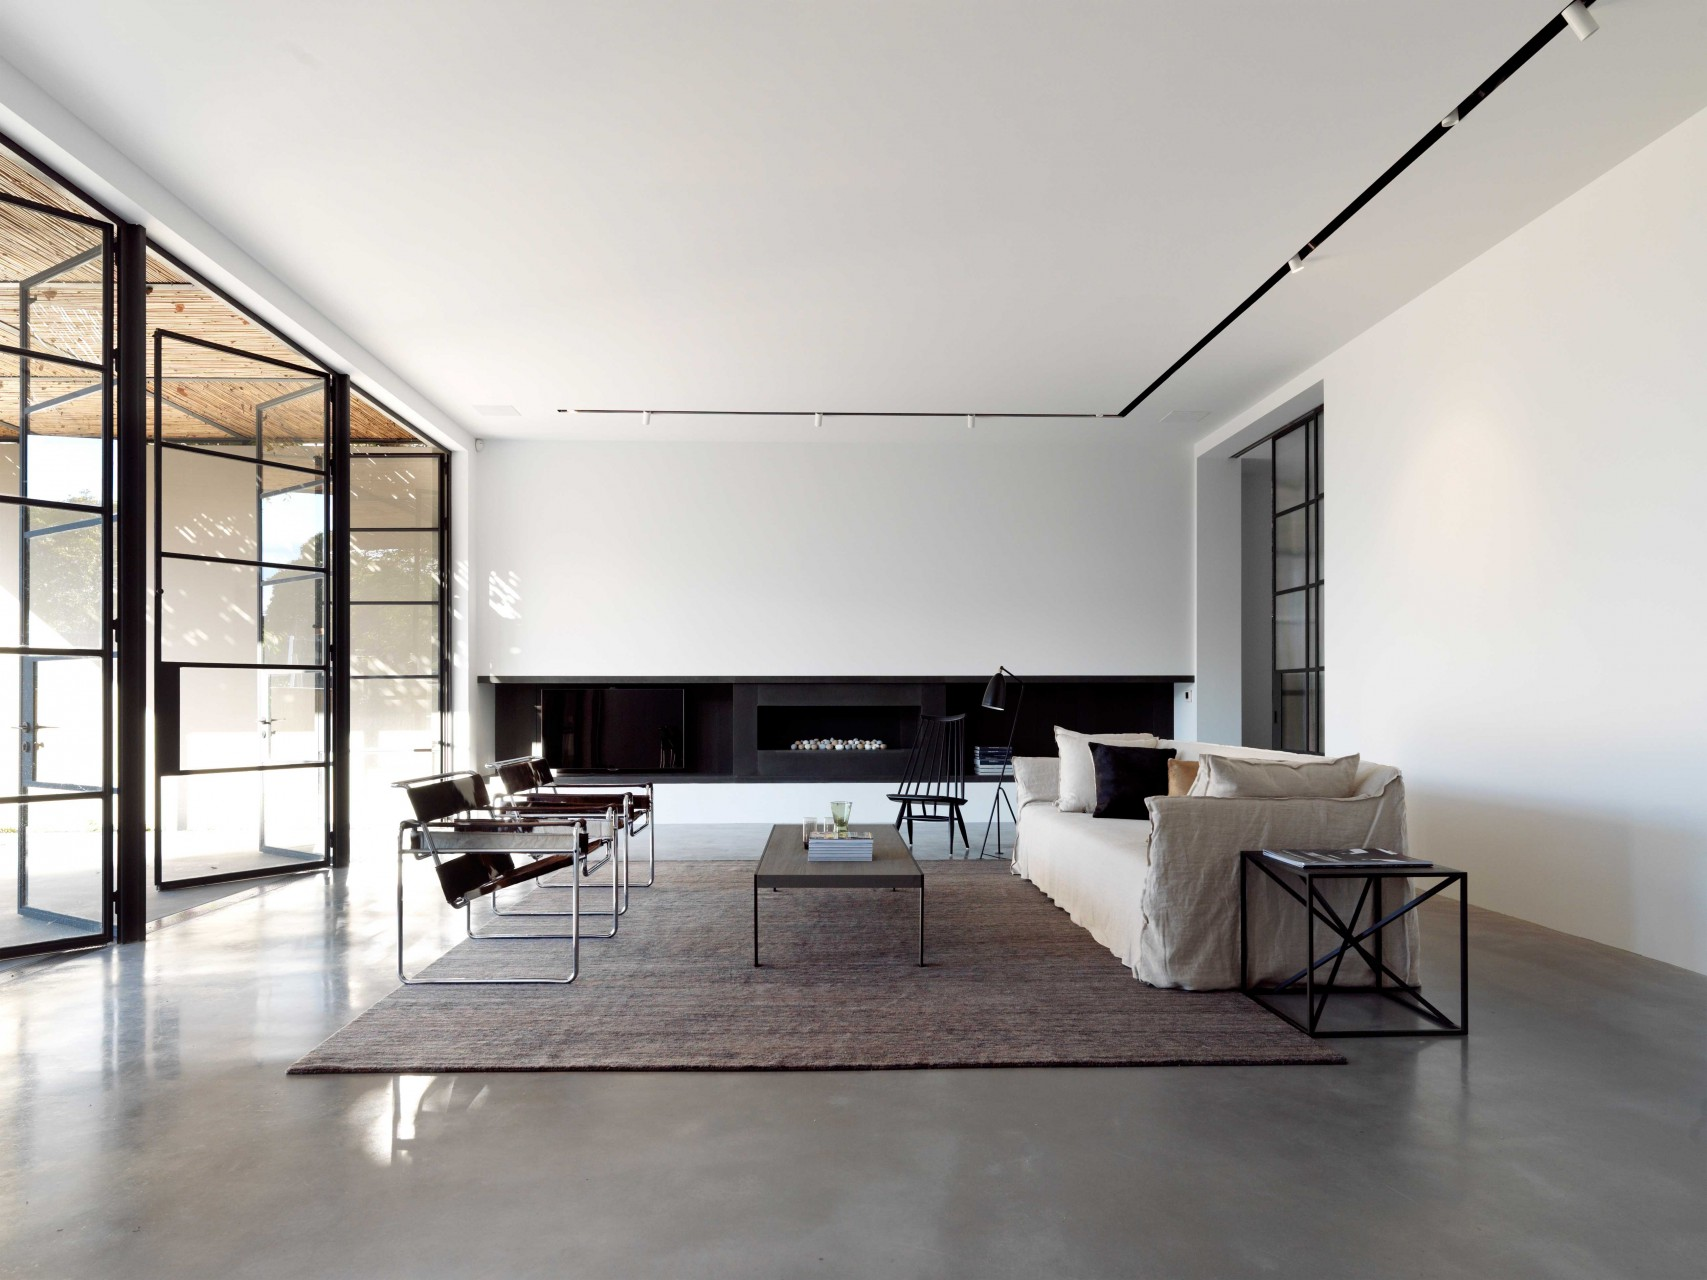 House T. by Luigi Rosselli Architects